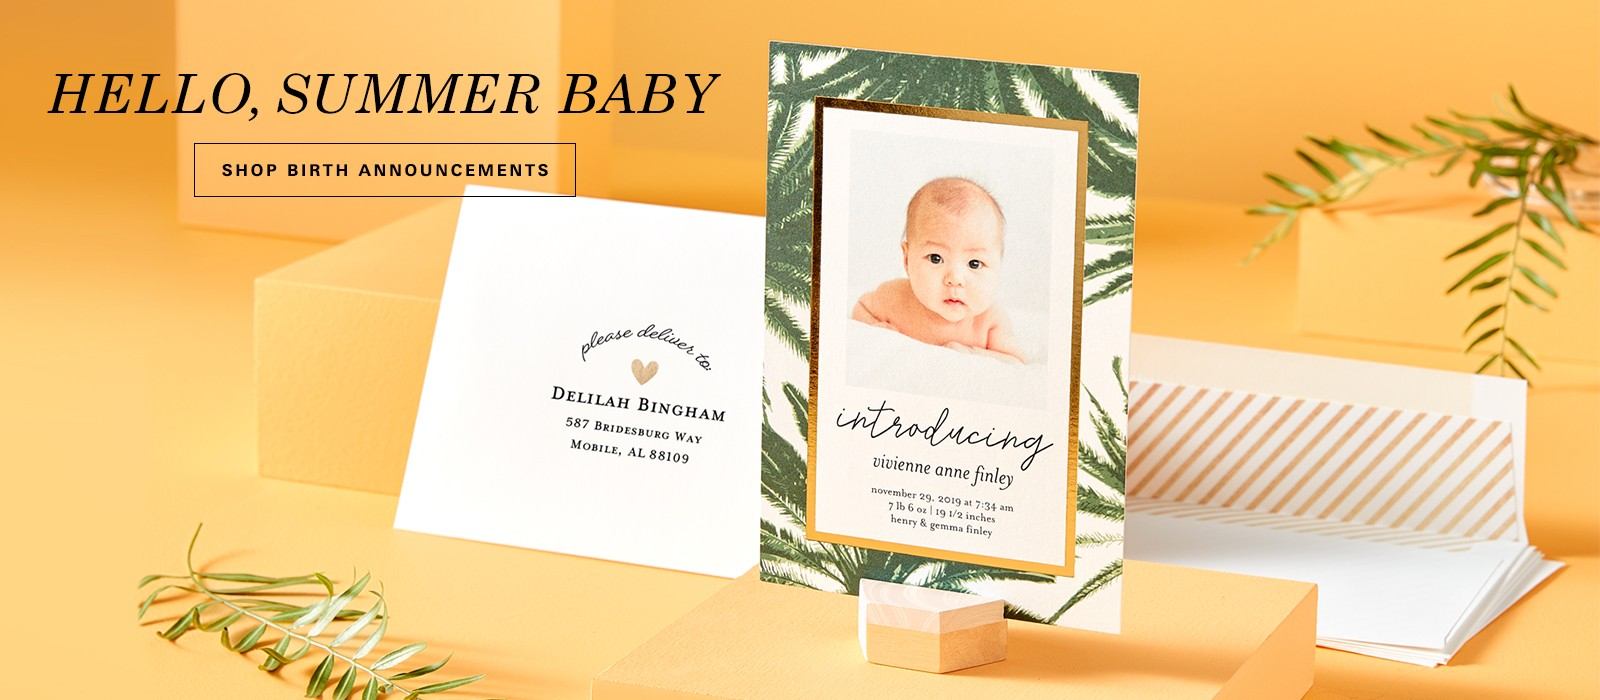 Unique Invitations, Announcements, Stylish Custom Cards & Stationery ...